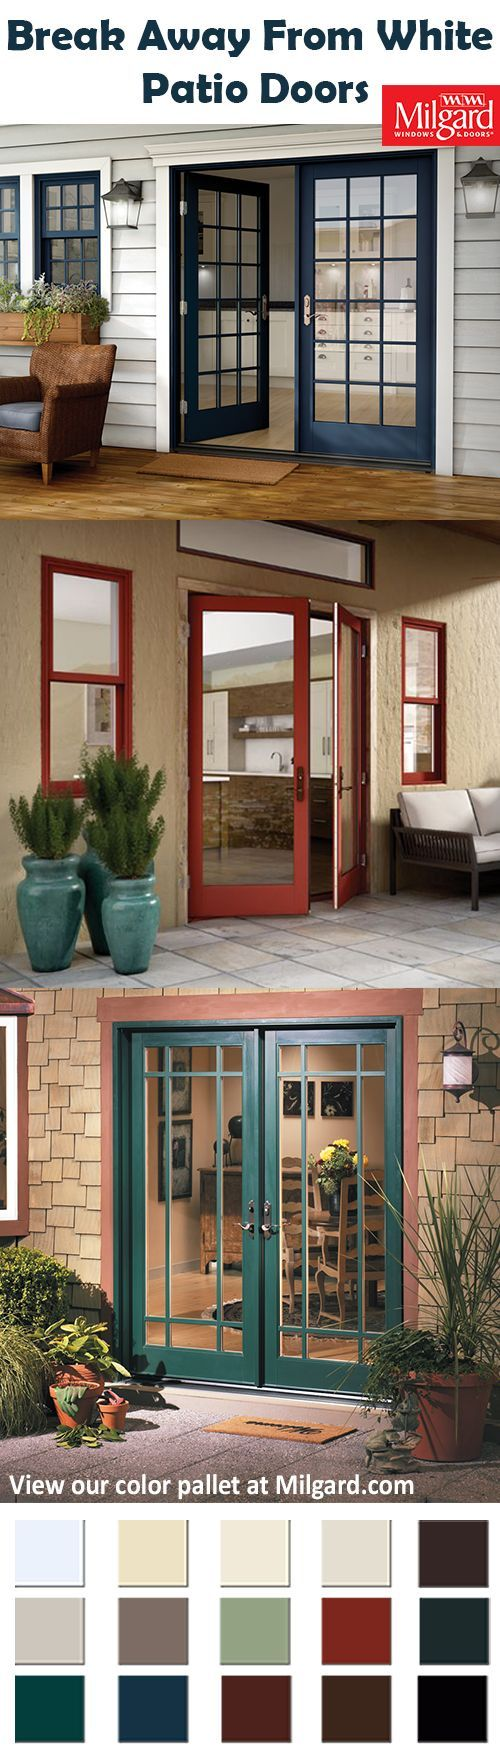 Try Something New With Unique Patio Doors Colors From Evening Sky